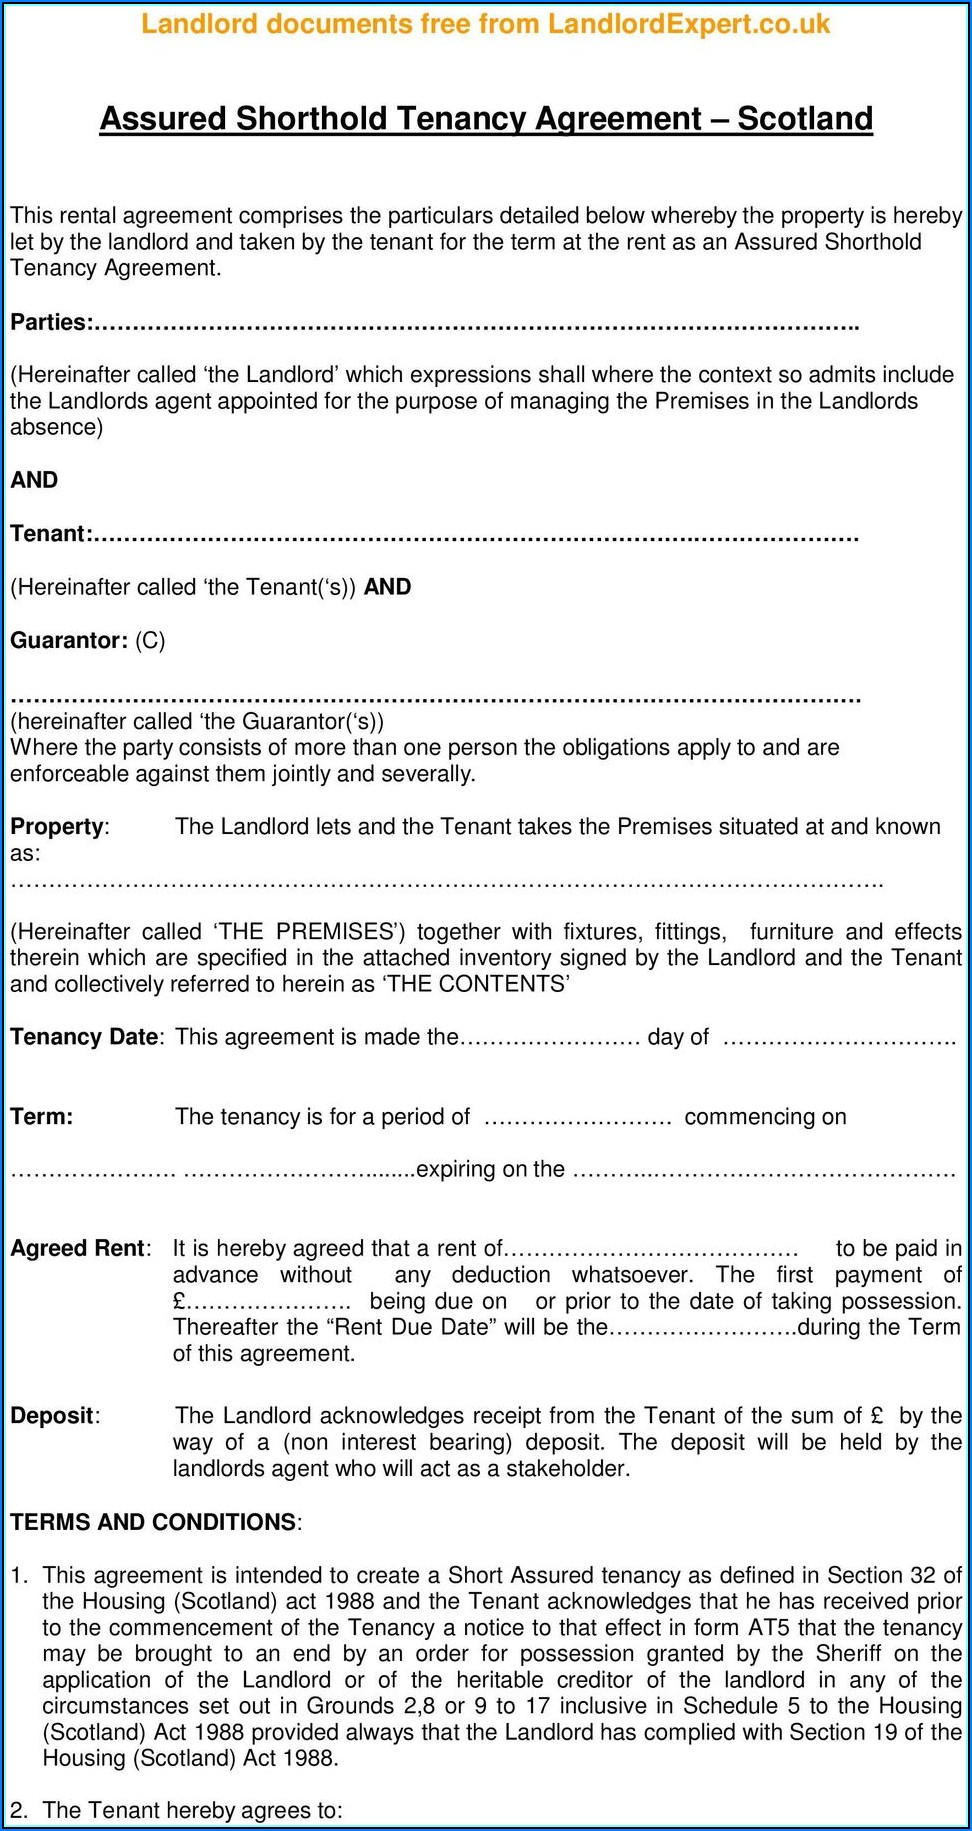 Tenancy Agreement Template Free Download Scotland